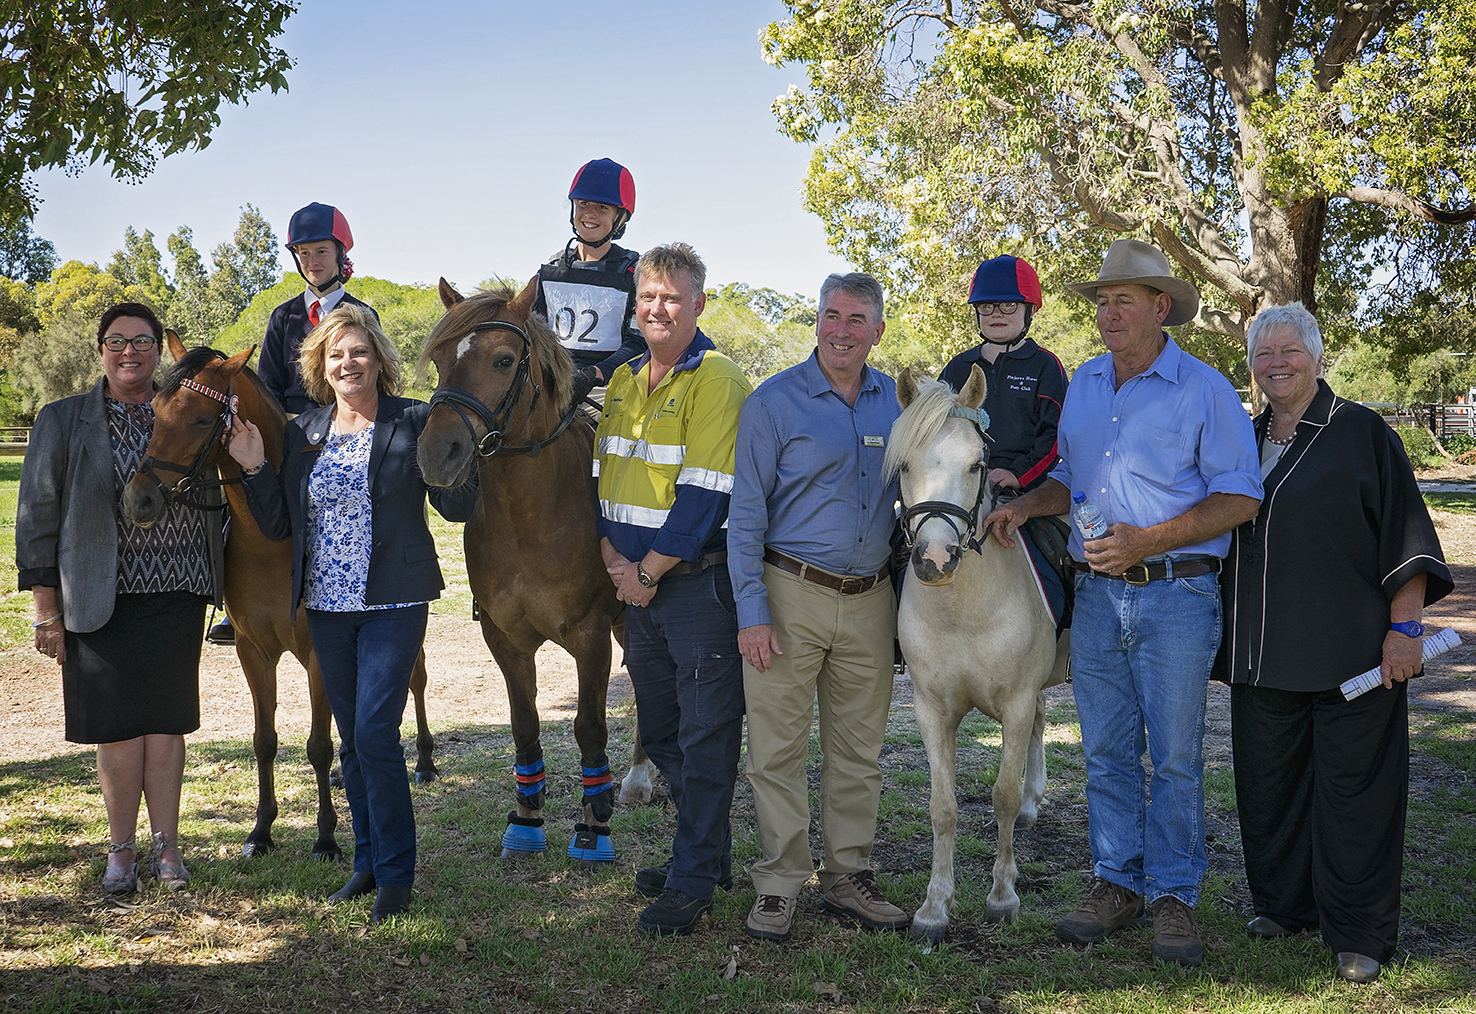 Ms. Lisa Baker MLA Member for Maylands, Mrs. Robyn Clarke MLA Member for Murray-Wellington, Tom Duxbury Alcoa Production Manager, Shire President Cr. David Bolt, Murray Equestrian Association Vice President Mr. Greg Angilley and Peel Development Chairperson Ms. Paddi Creevy with Pinjarra Horse and Pony Club members